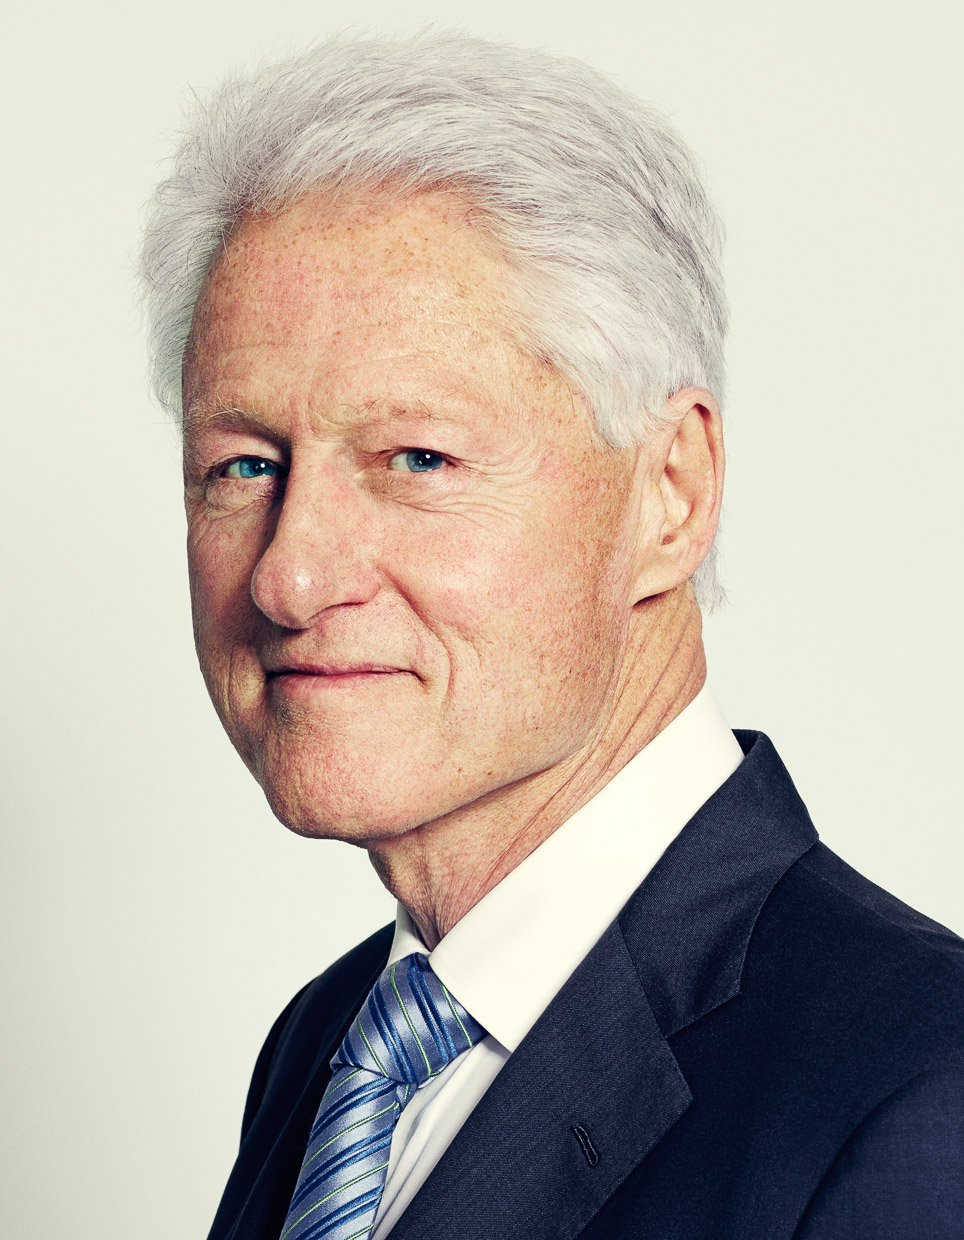 Bill_Clinton_B-10